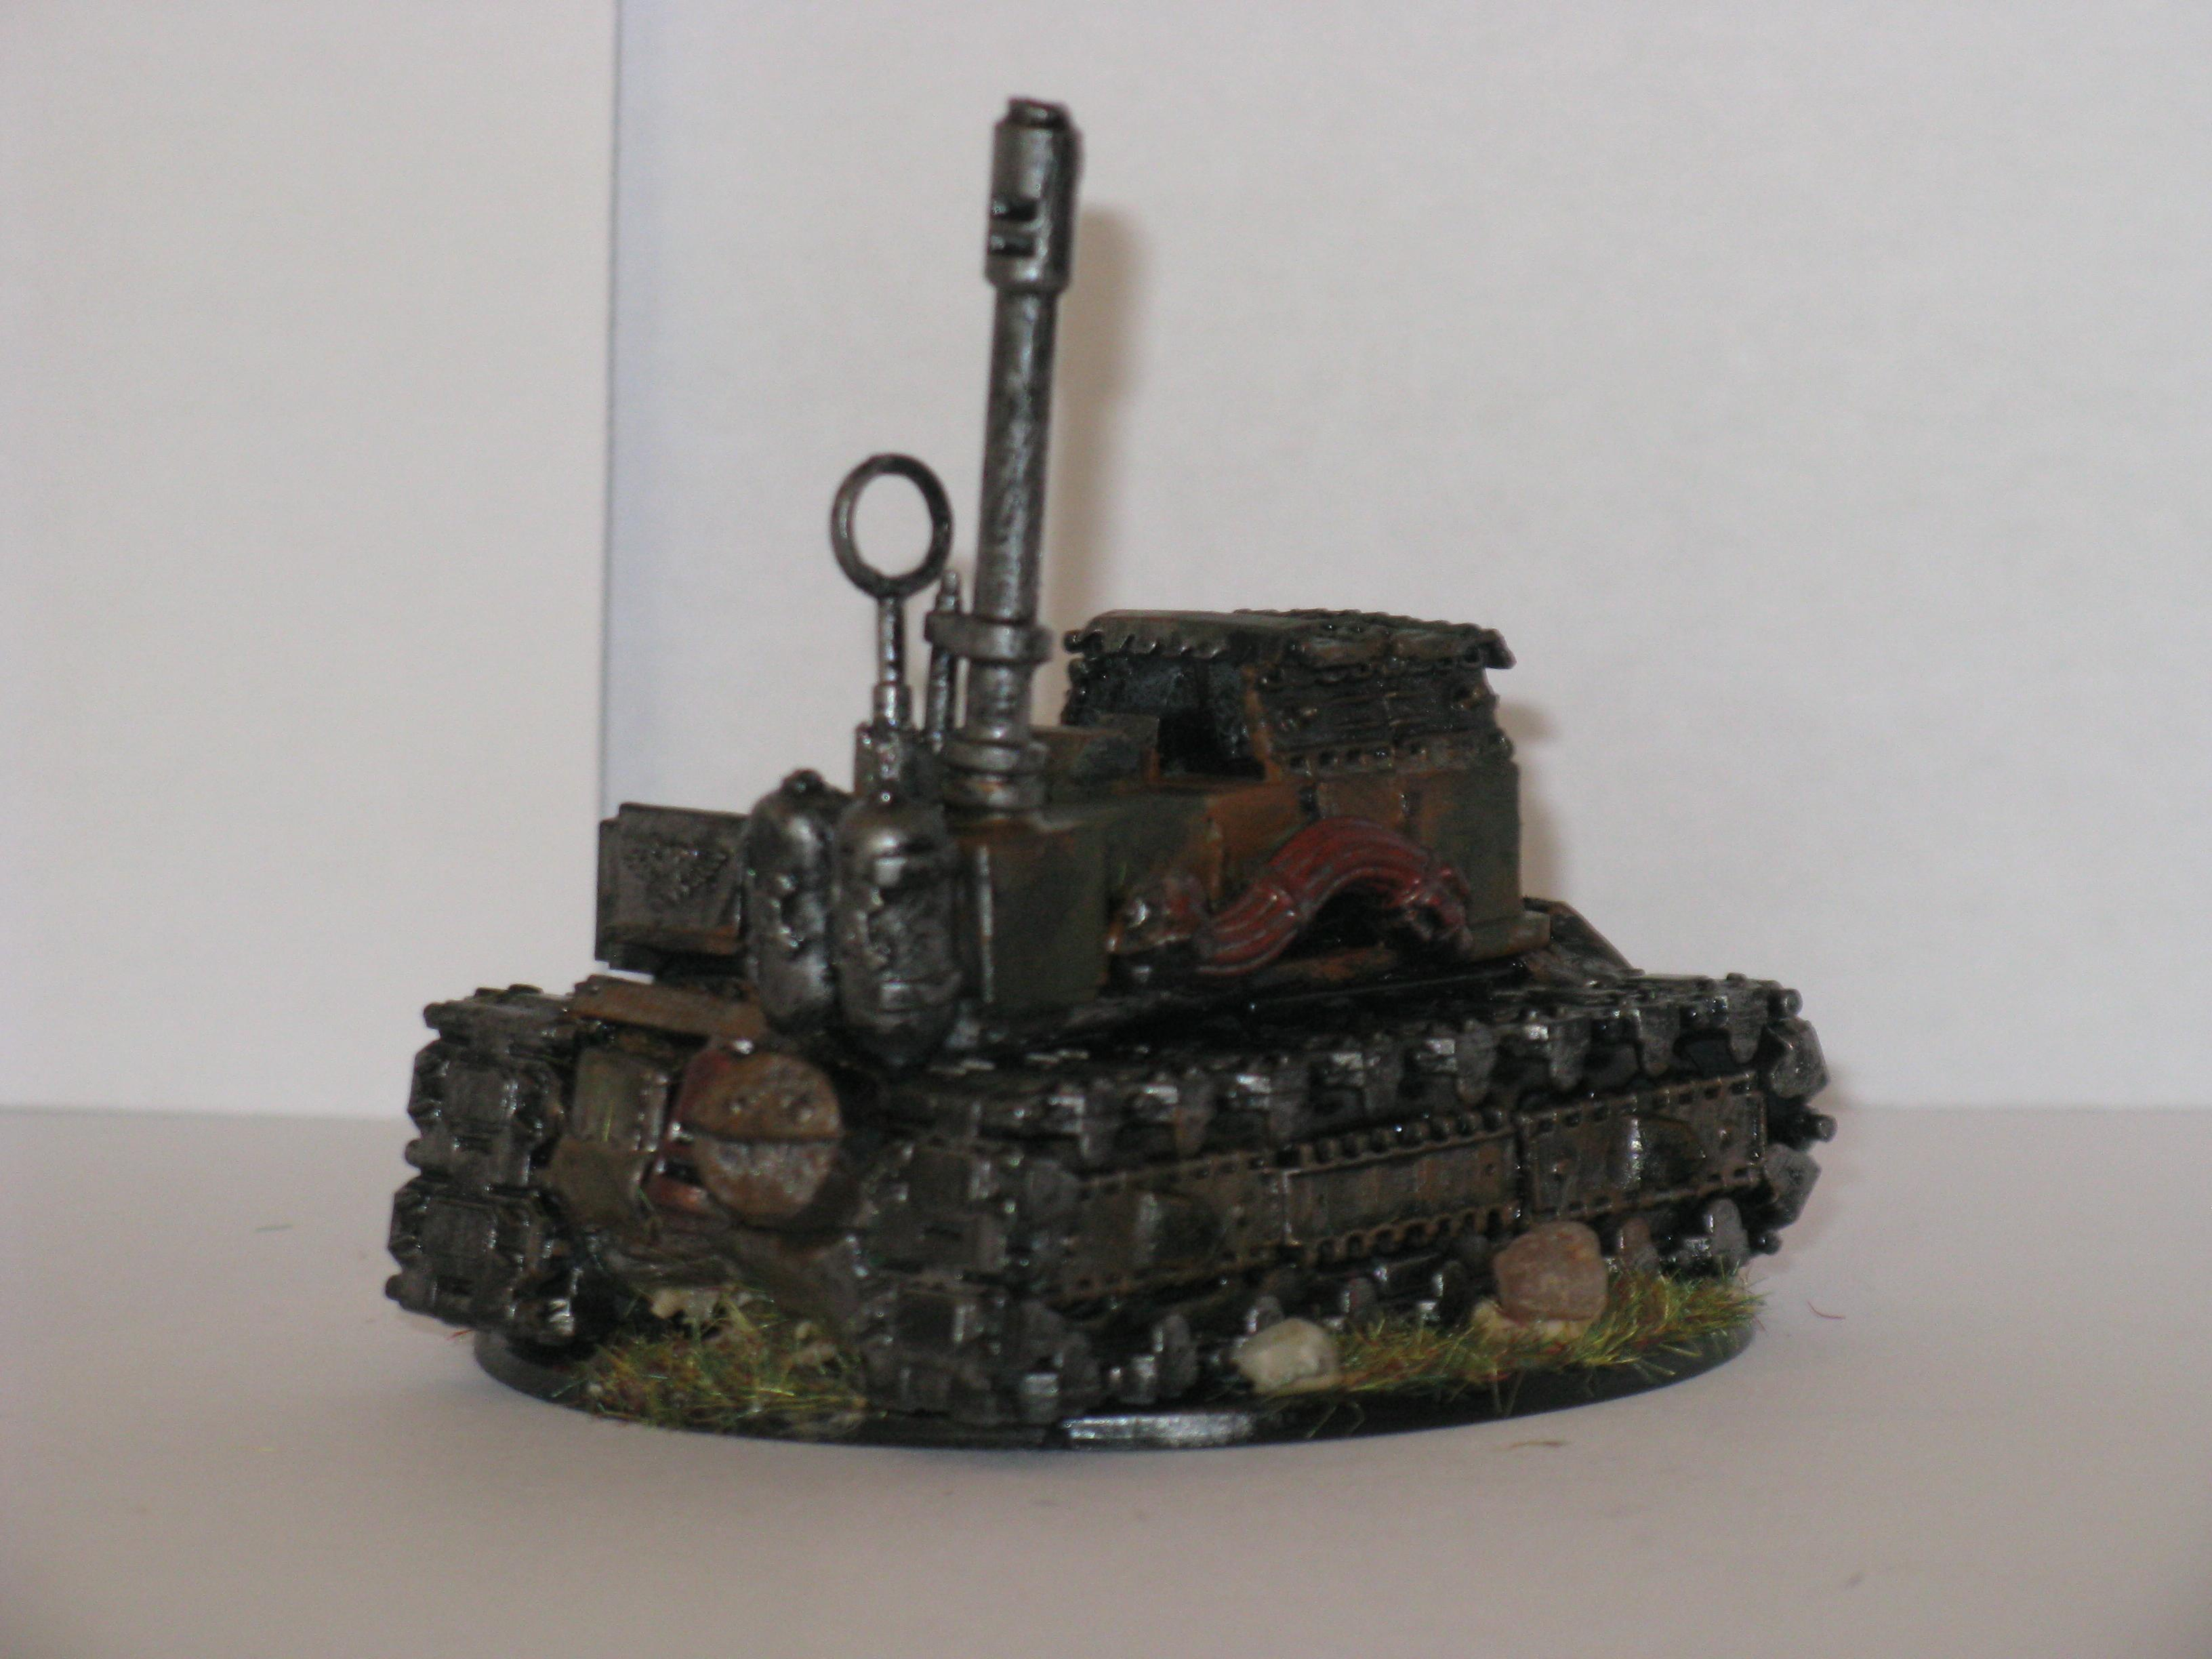 This Is A Custom Killdozer I Made! Build T After Playing Way To Much Coh!!! Please Be Gentel